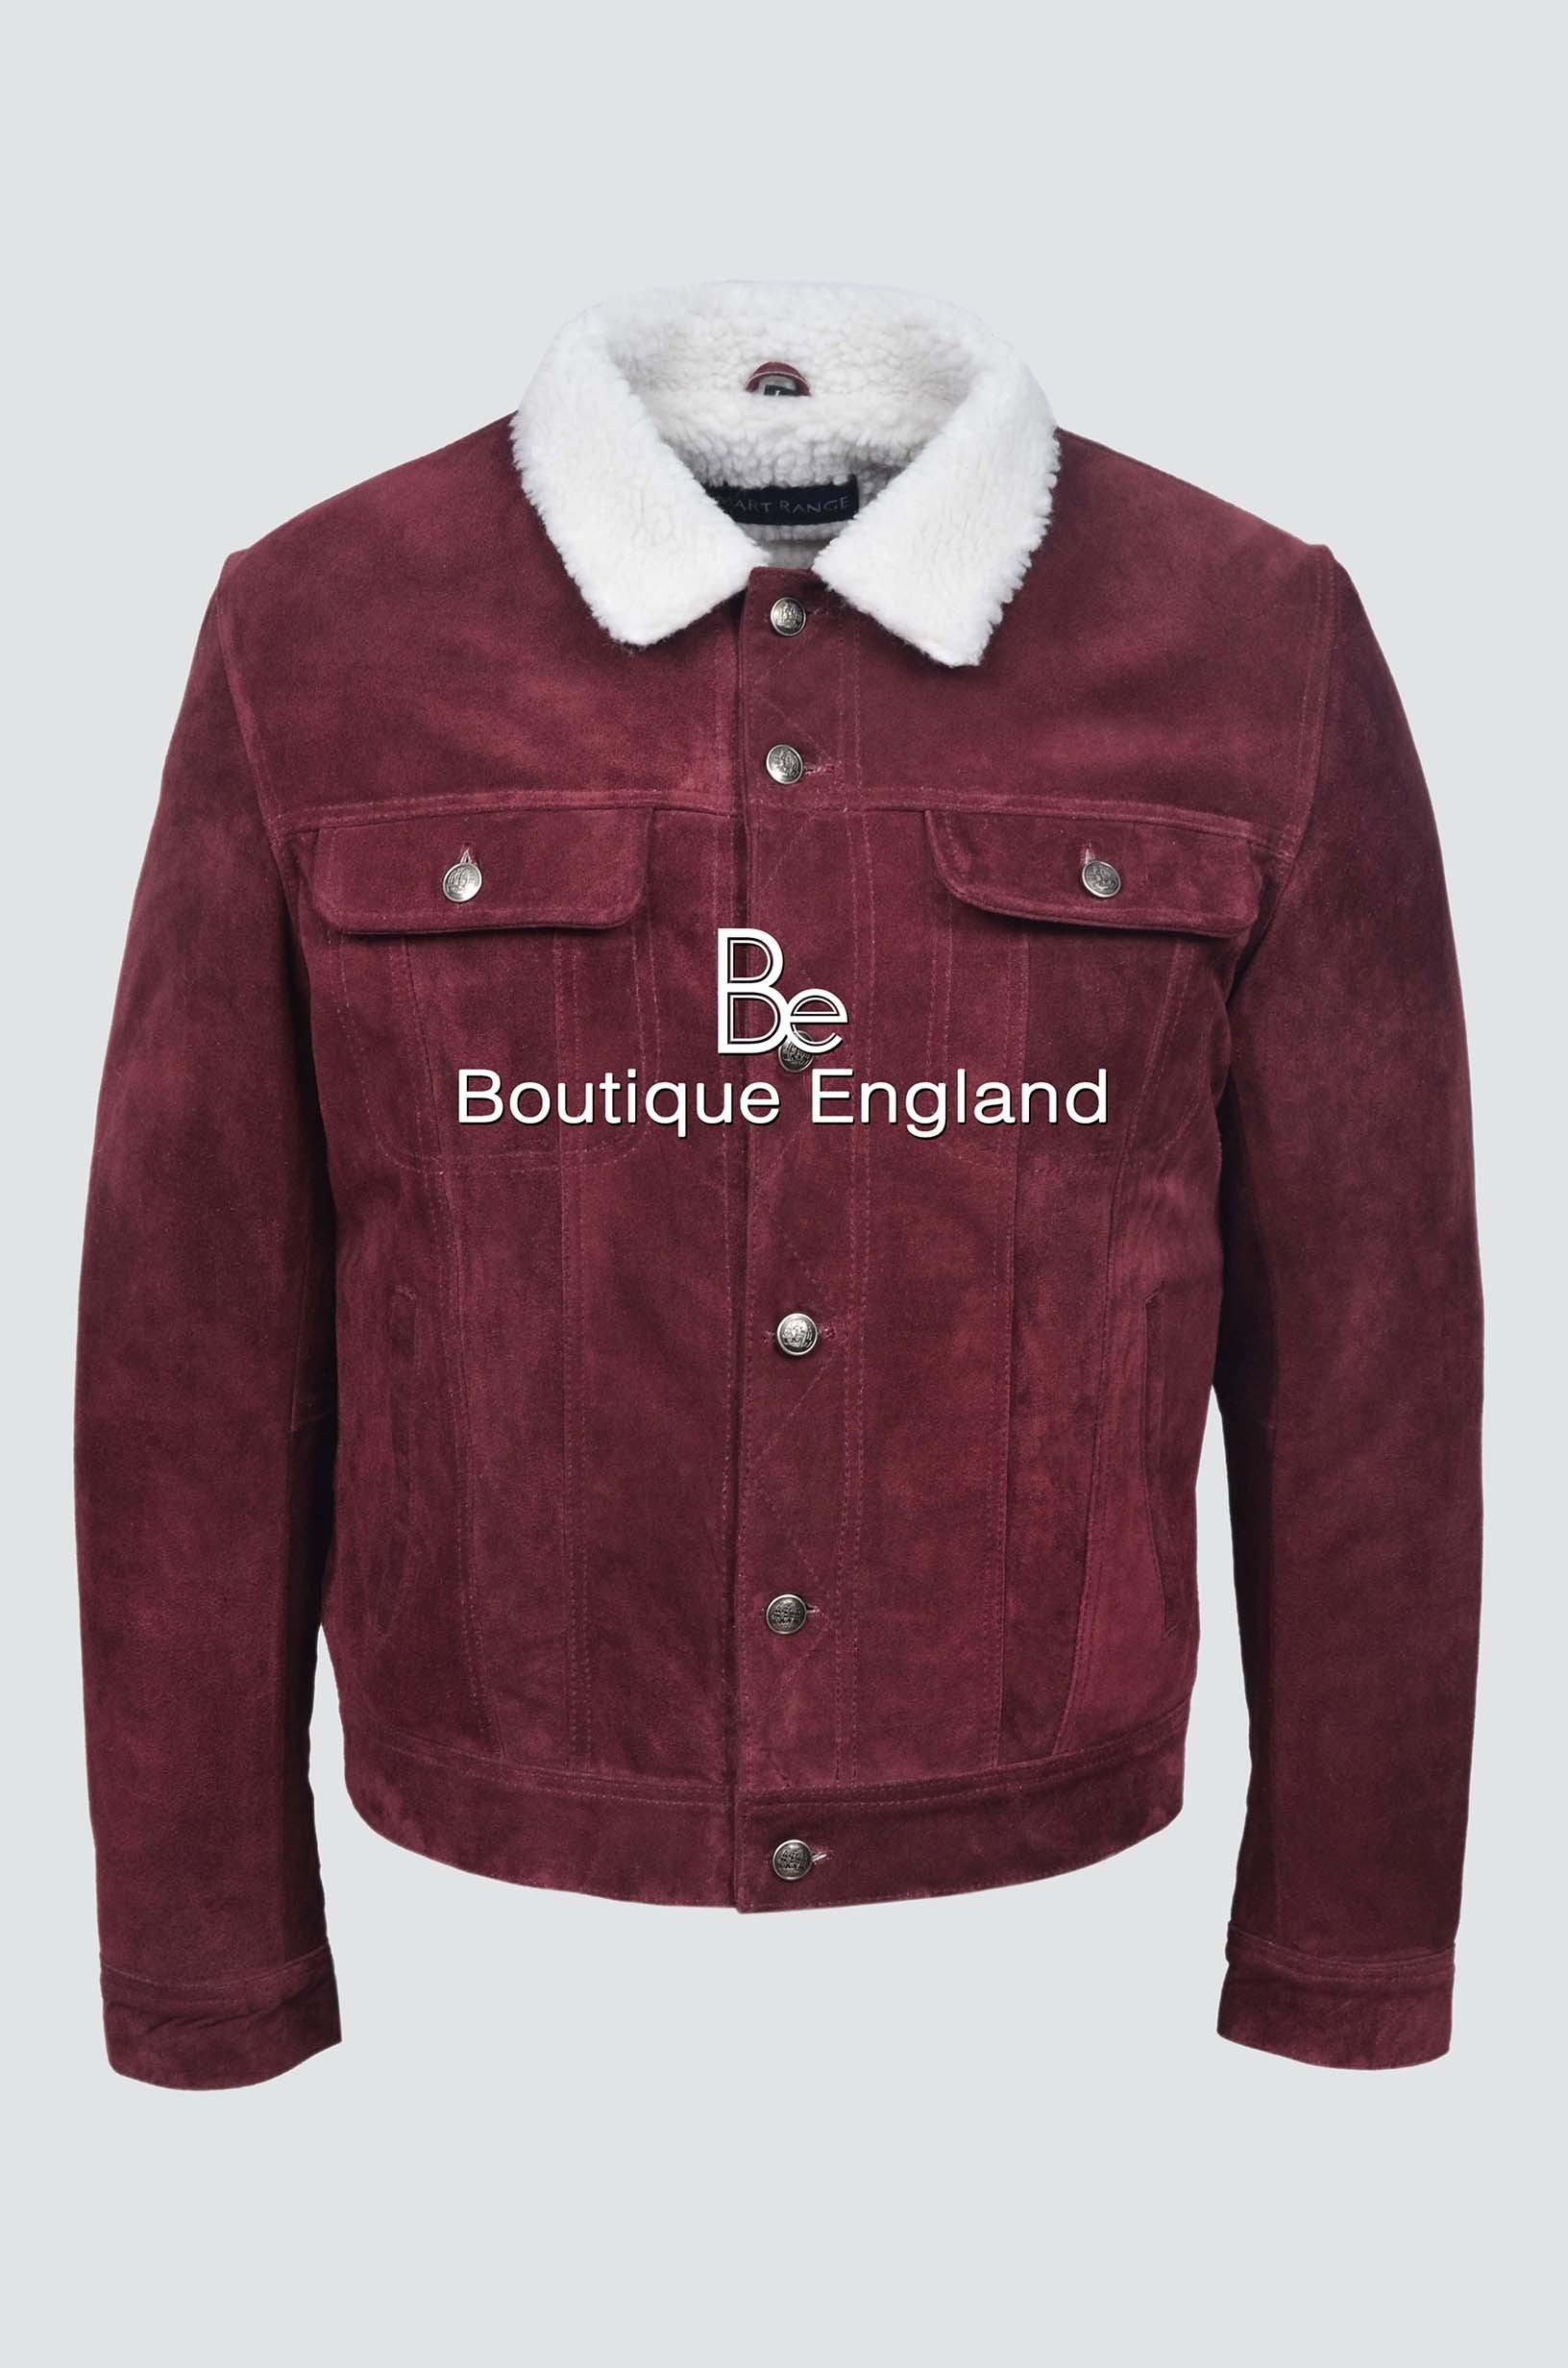 'TRUCKER' MEN'S 1280 Cherry SUEDE WITH SHEARLING FUR CLASSIC REAL SOFT COW WESTERN LEATHER JACKET